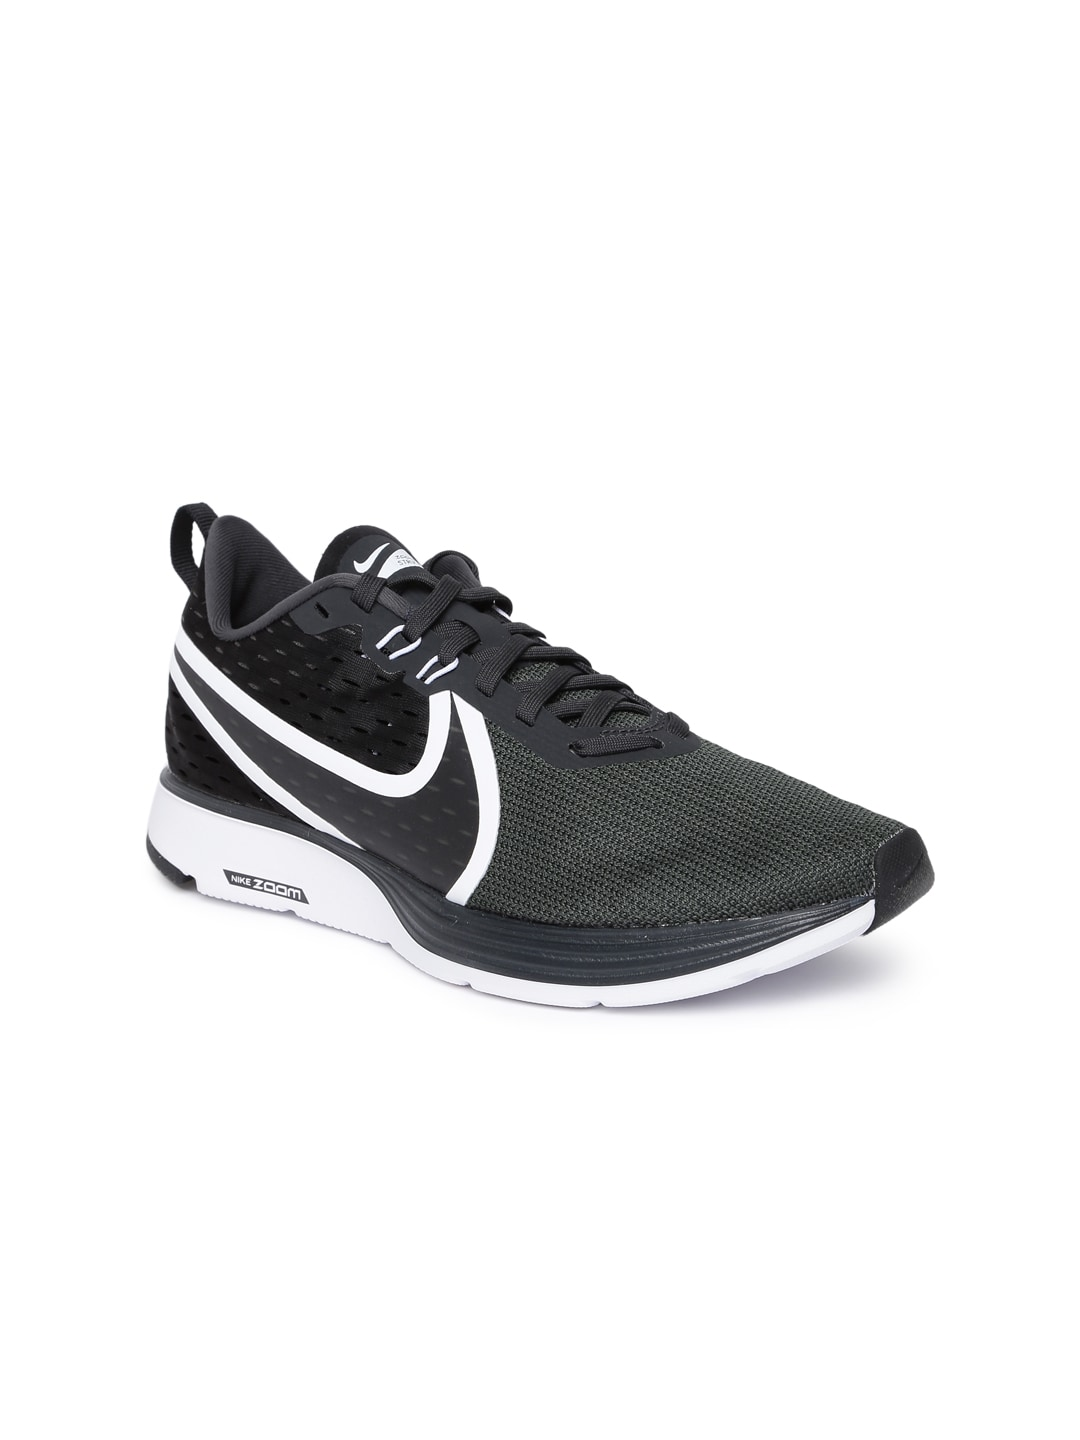 673607c0df5c Nike Zoom Women - Buy Nike Zoom Women online in India